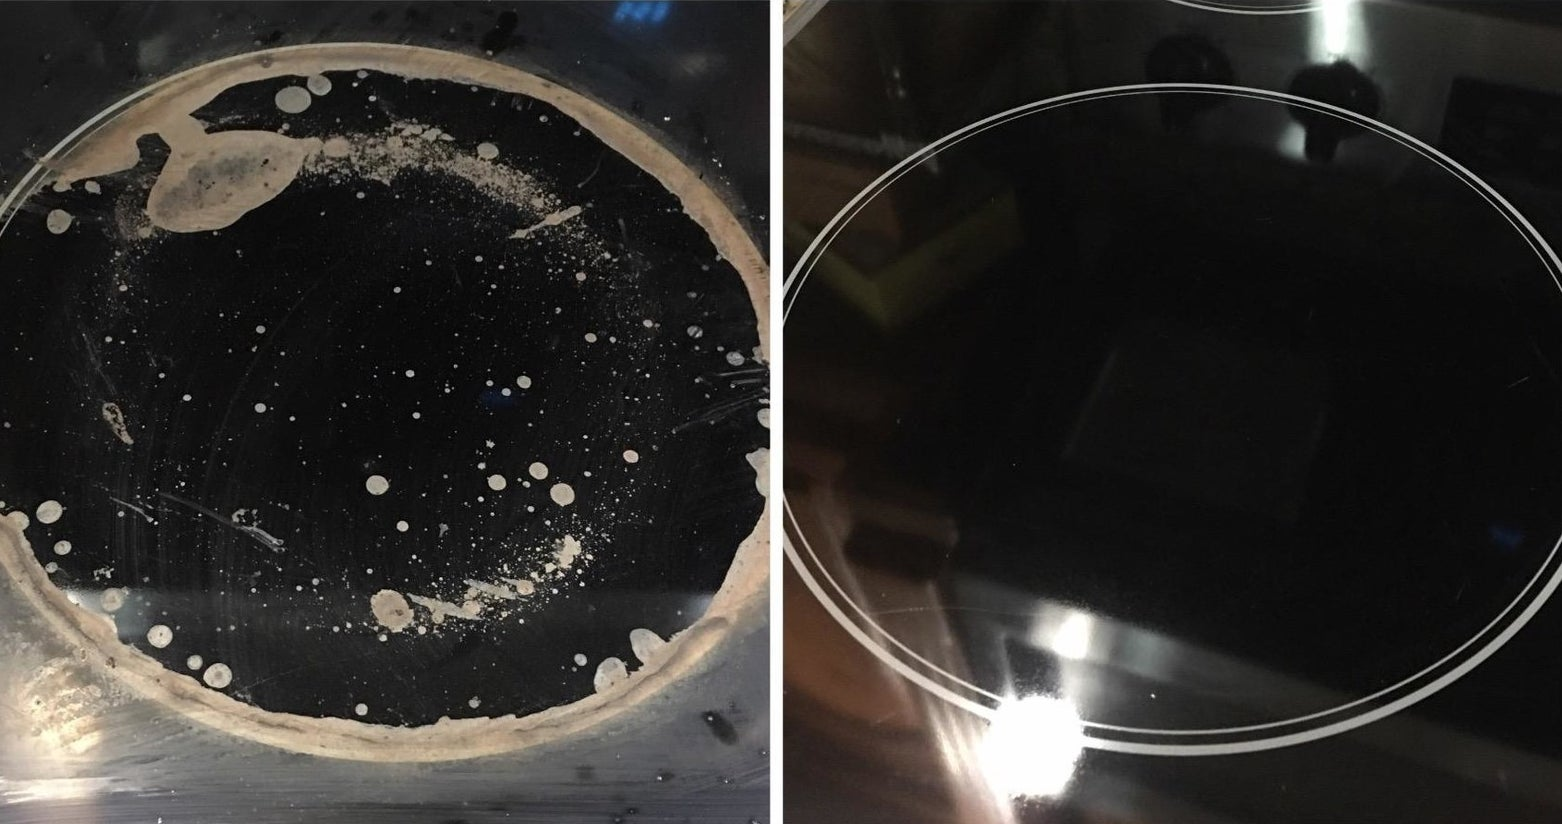 A reviewer showing a glass stove burner with buildup stains looking cleaner and shinier after using the product